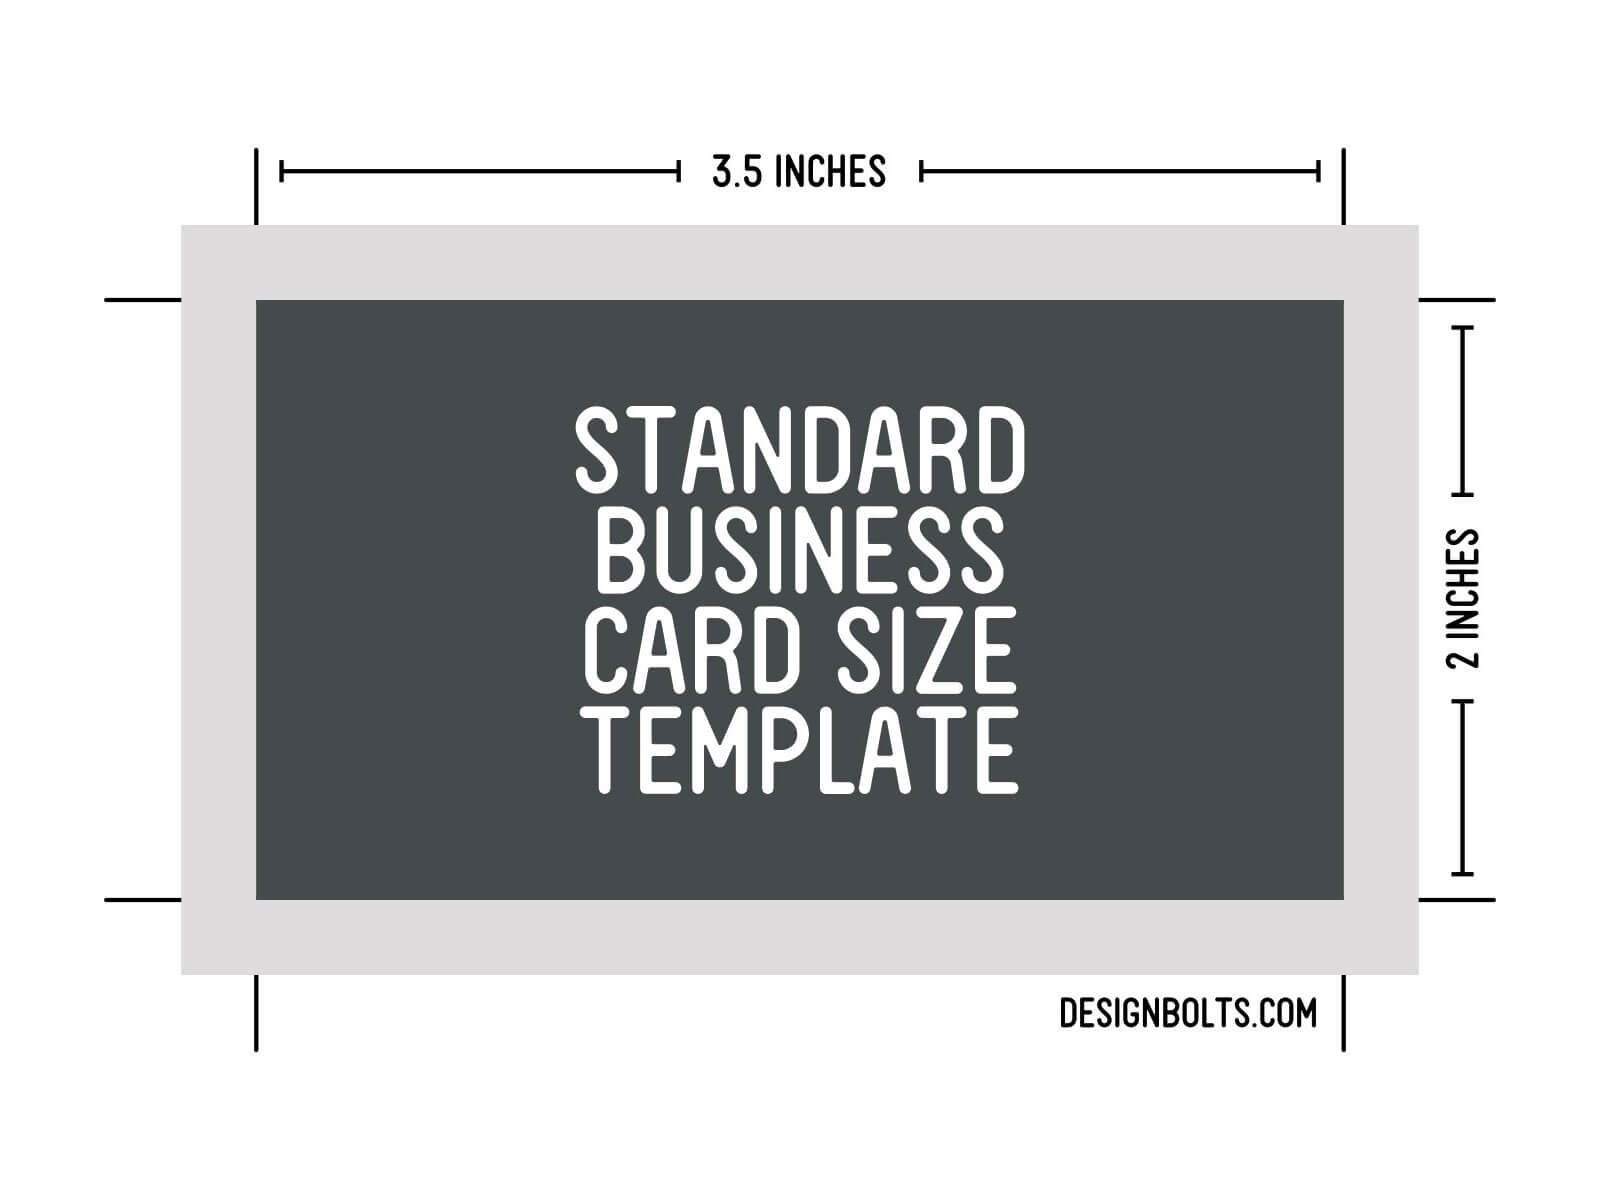 Free Standard Business Card Size, Letterhead & Envelop Sizes in Business Card Size Template Photoshop